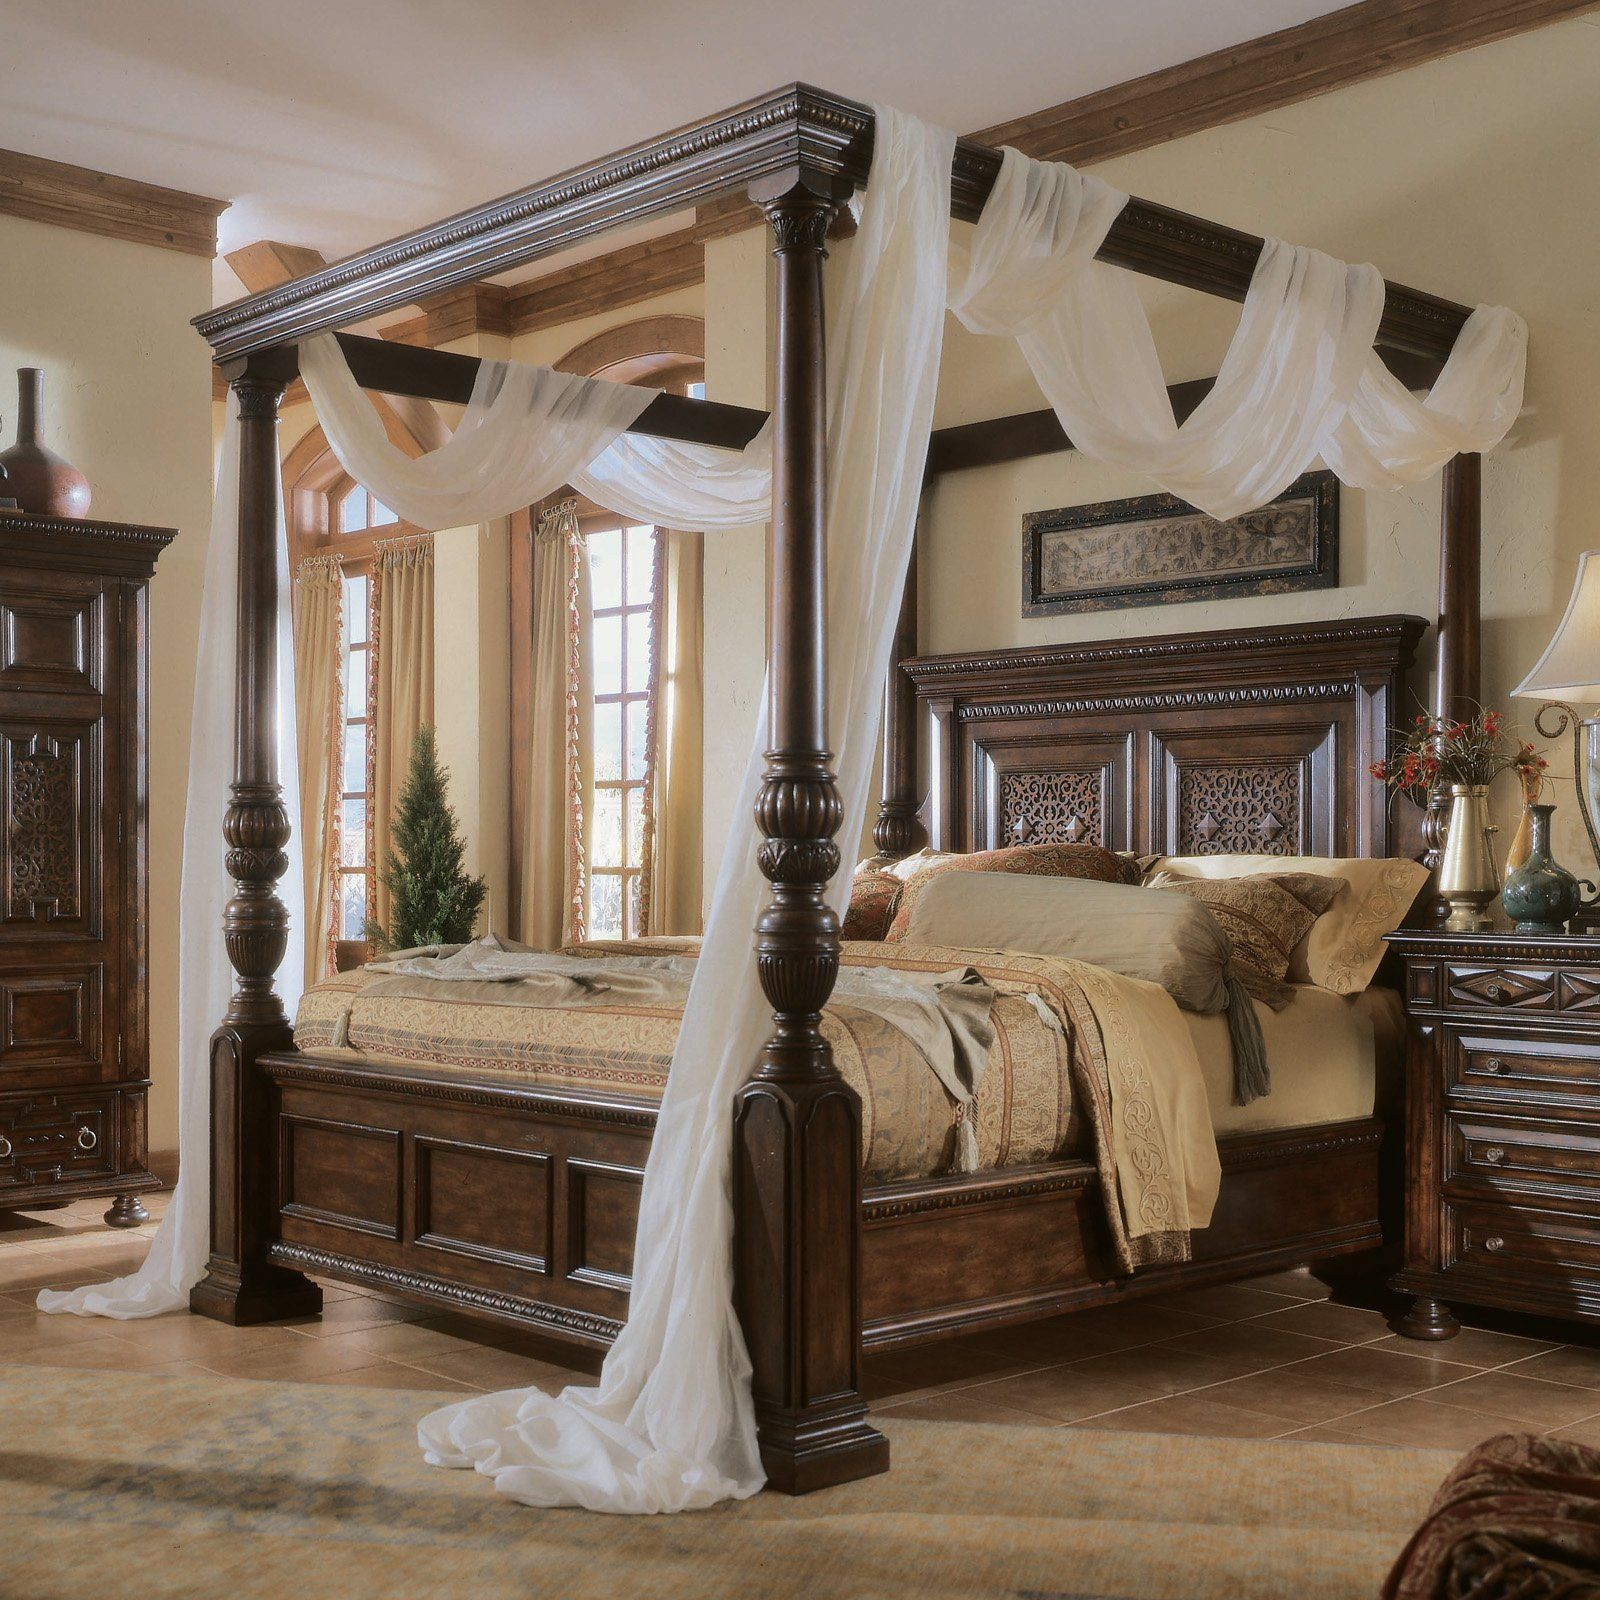 15 Most Beautiful Decorated And Designed Beds : cheap canopy bed frame - memphite.com